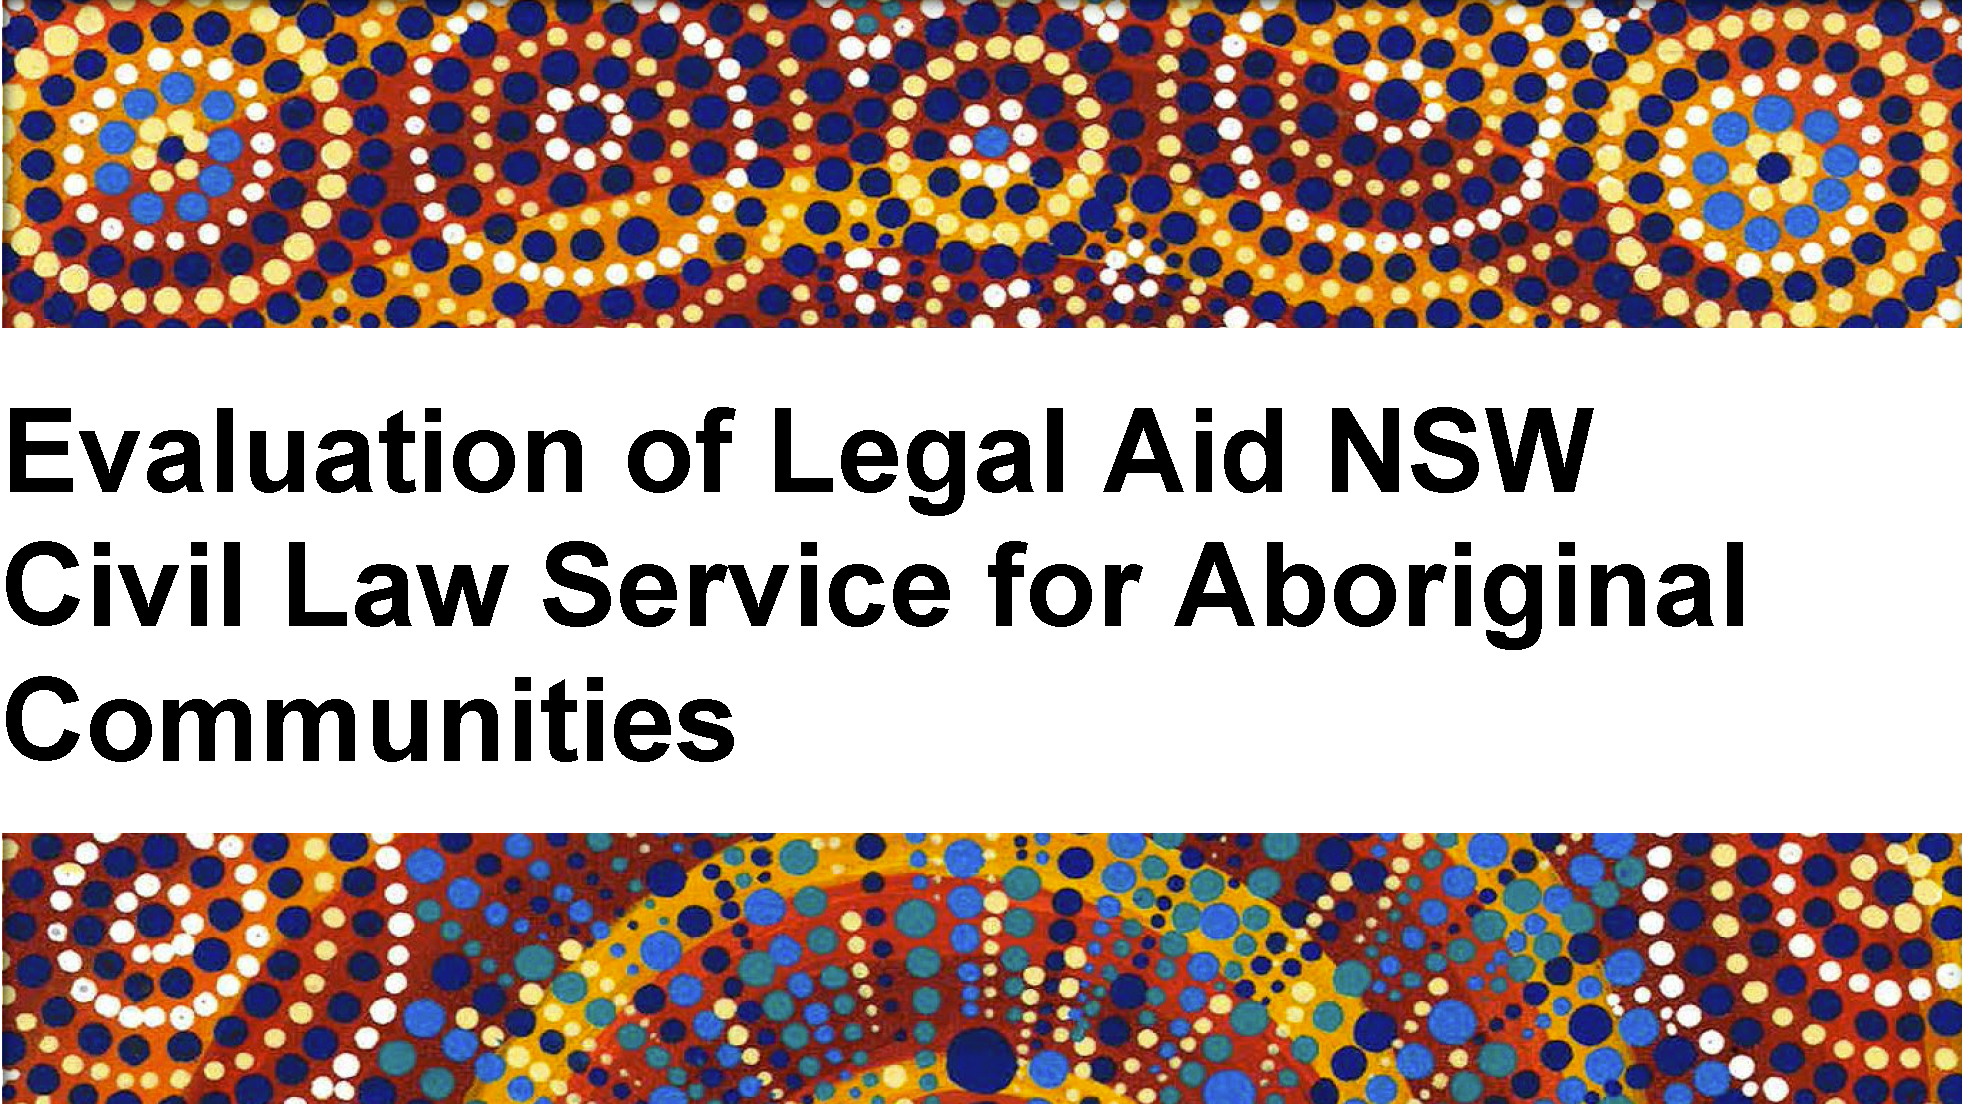 Evaluating a warm and compassionate legal service for Aboriginal communities